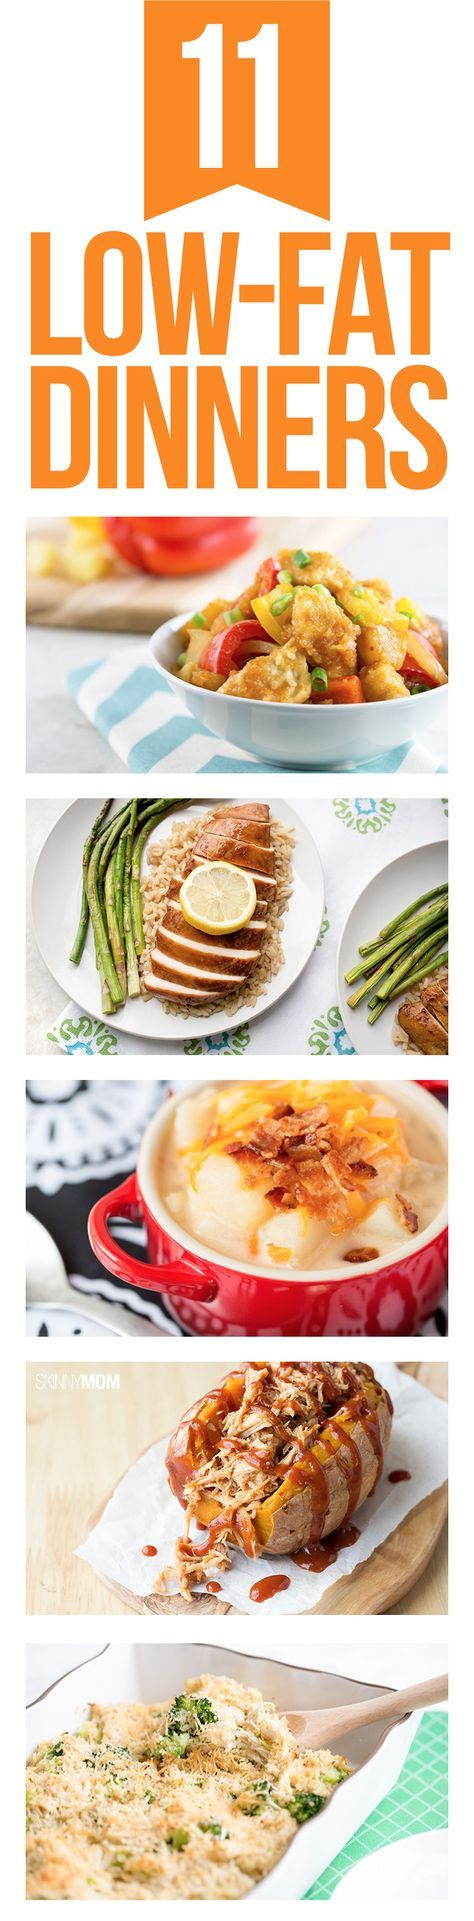 Serve these low-fat suppers for a healthy meal!